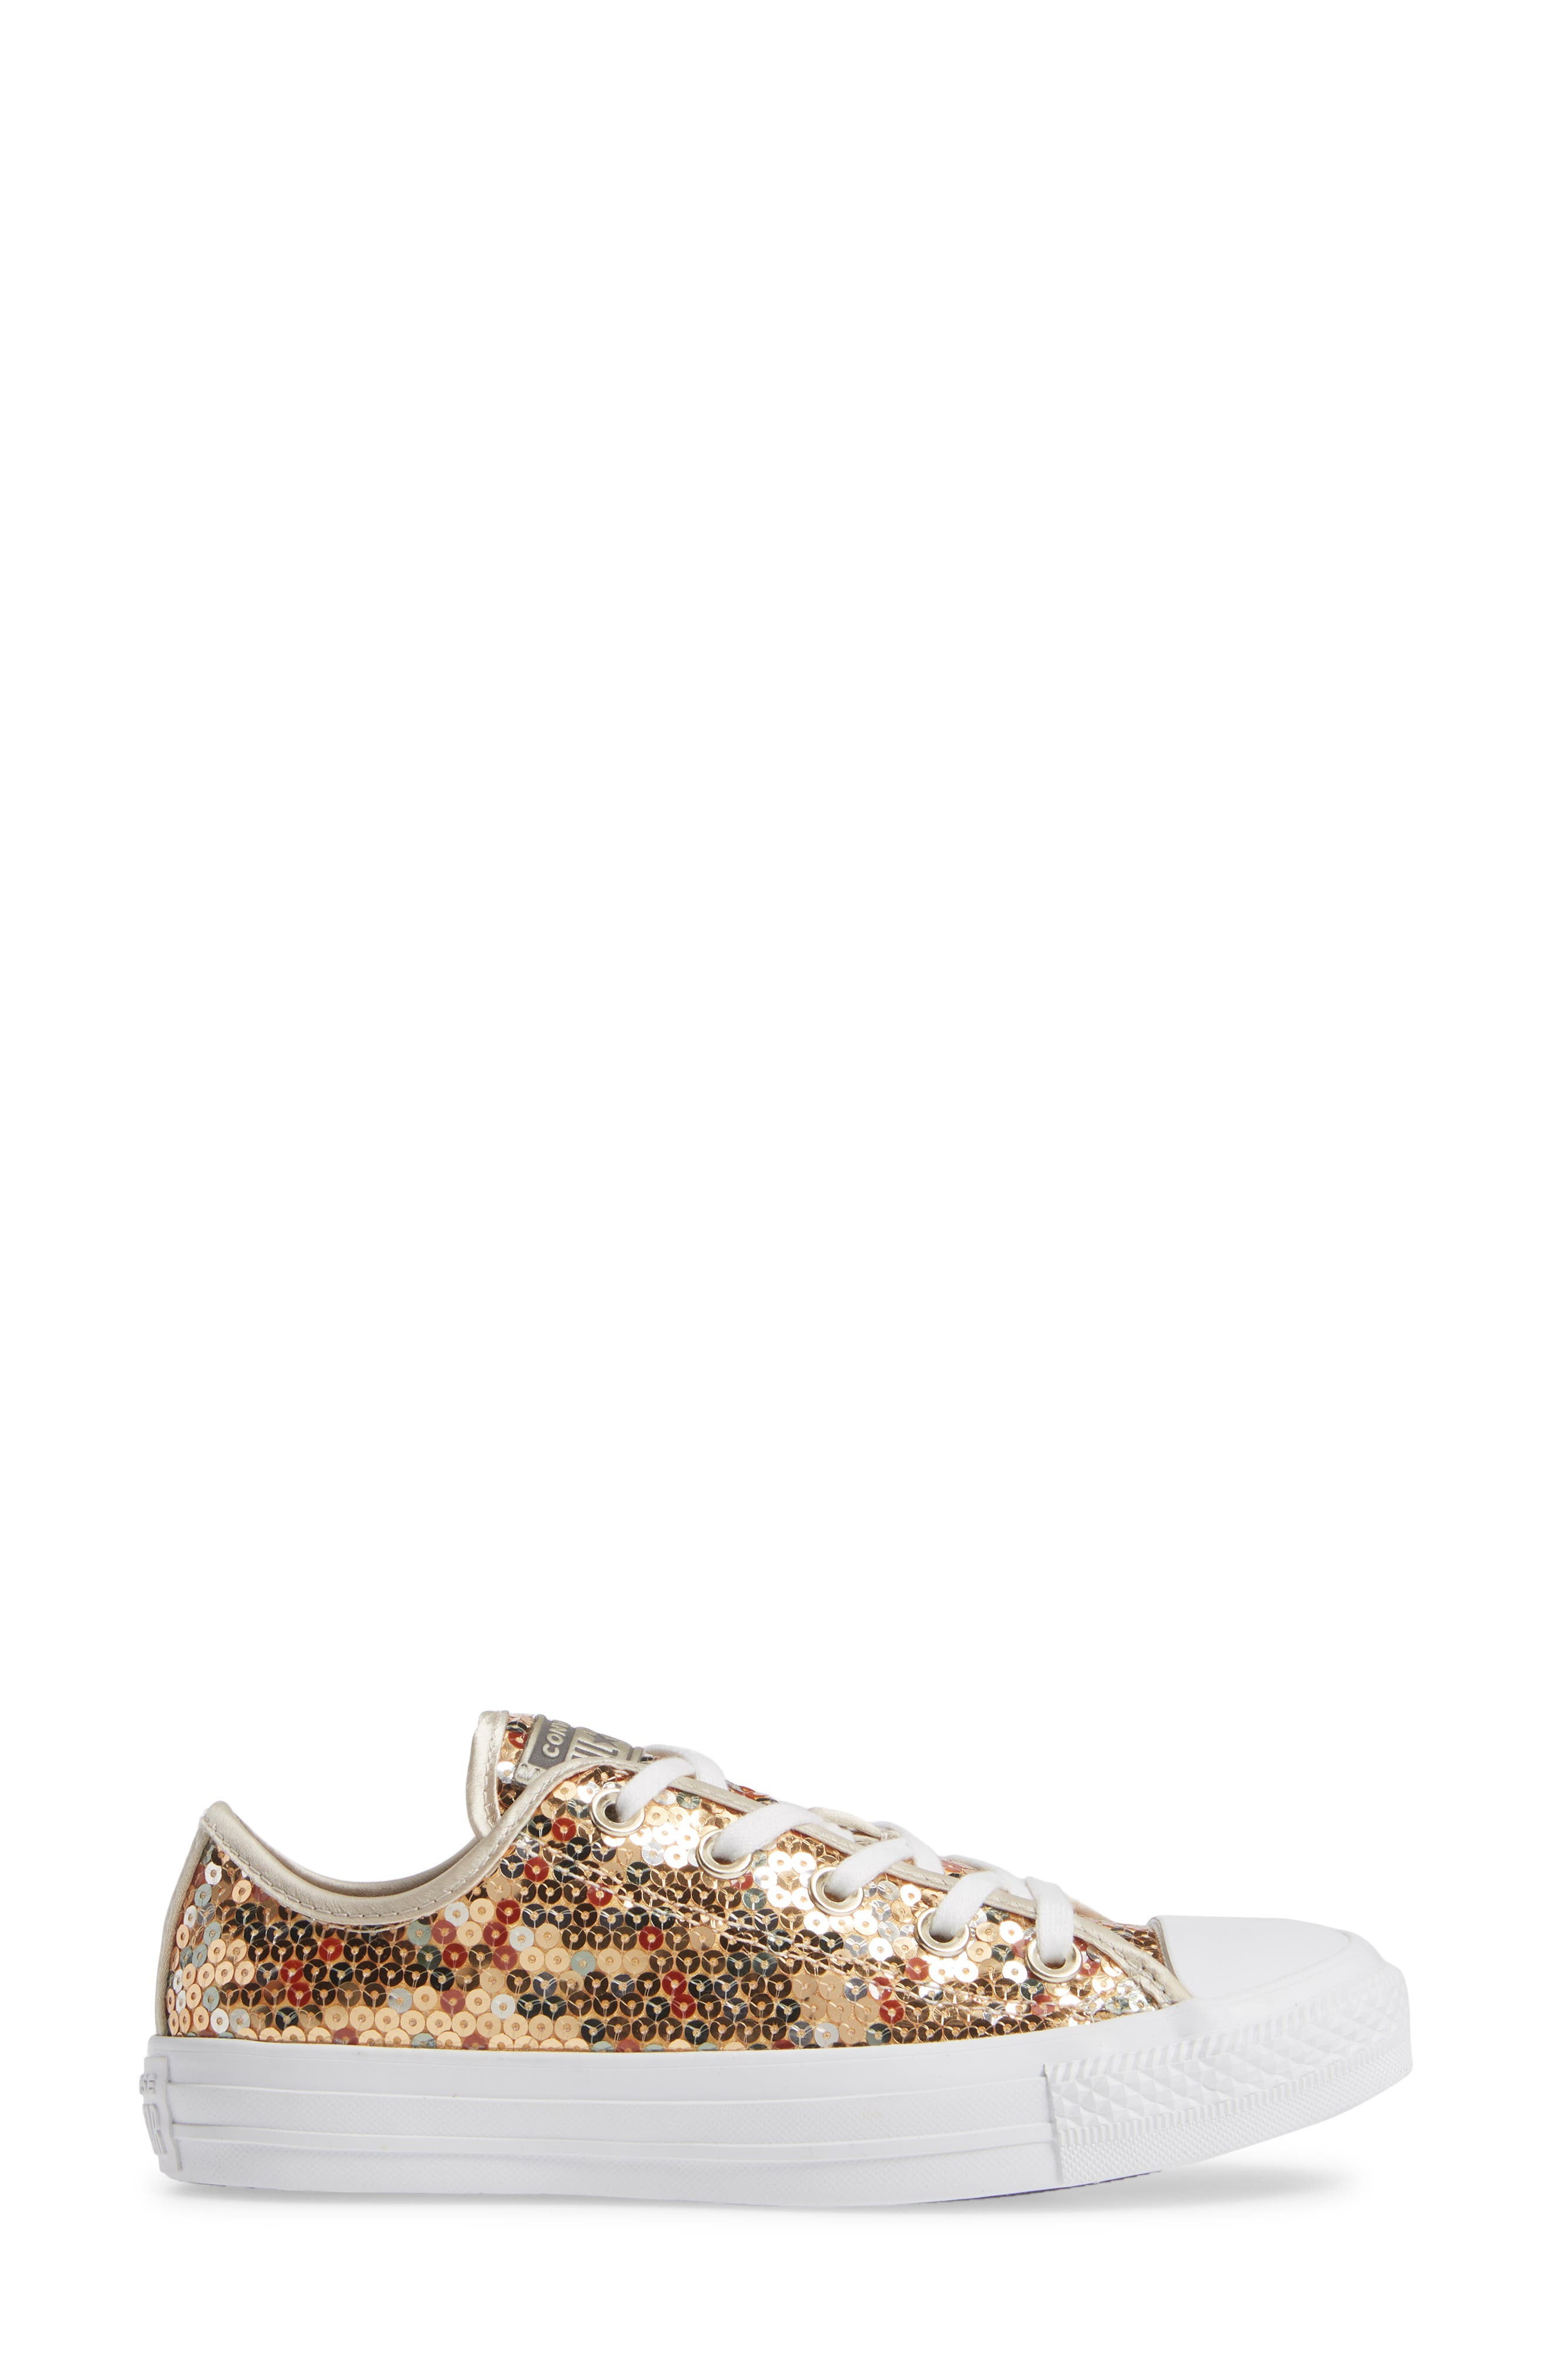 CONVERSE, Chuck Taylor<sup>®</sup> All Star<sup>®</sup> Sequin Low Top Sneaker, Alternate thumbnail 3, color, GOLD SEQUINS